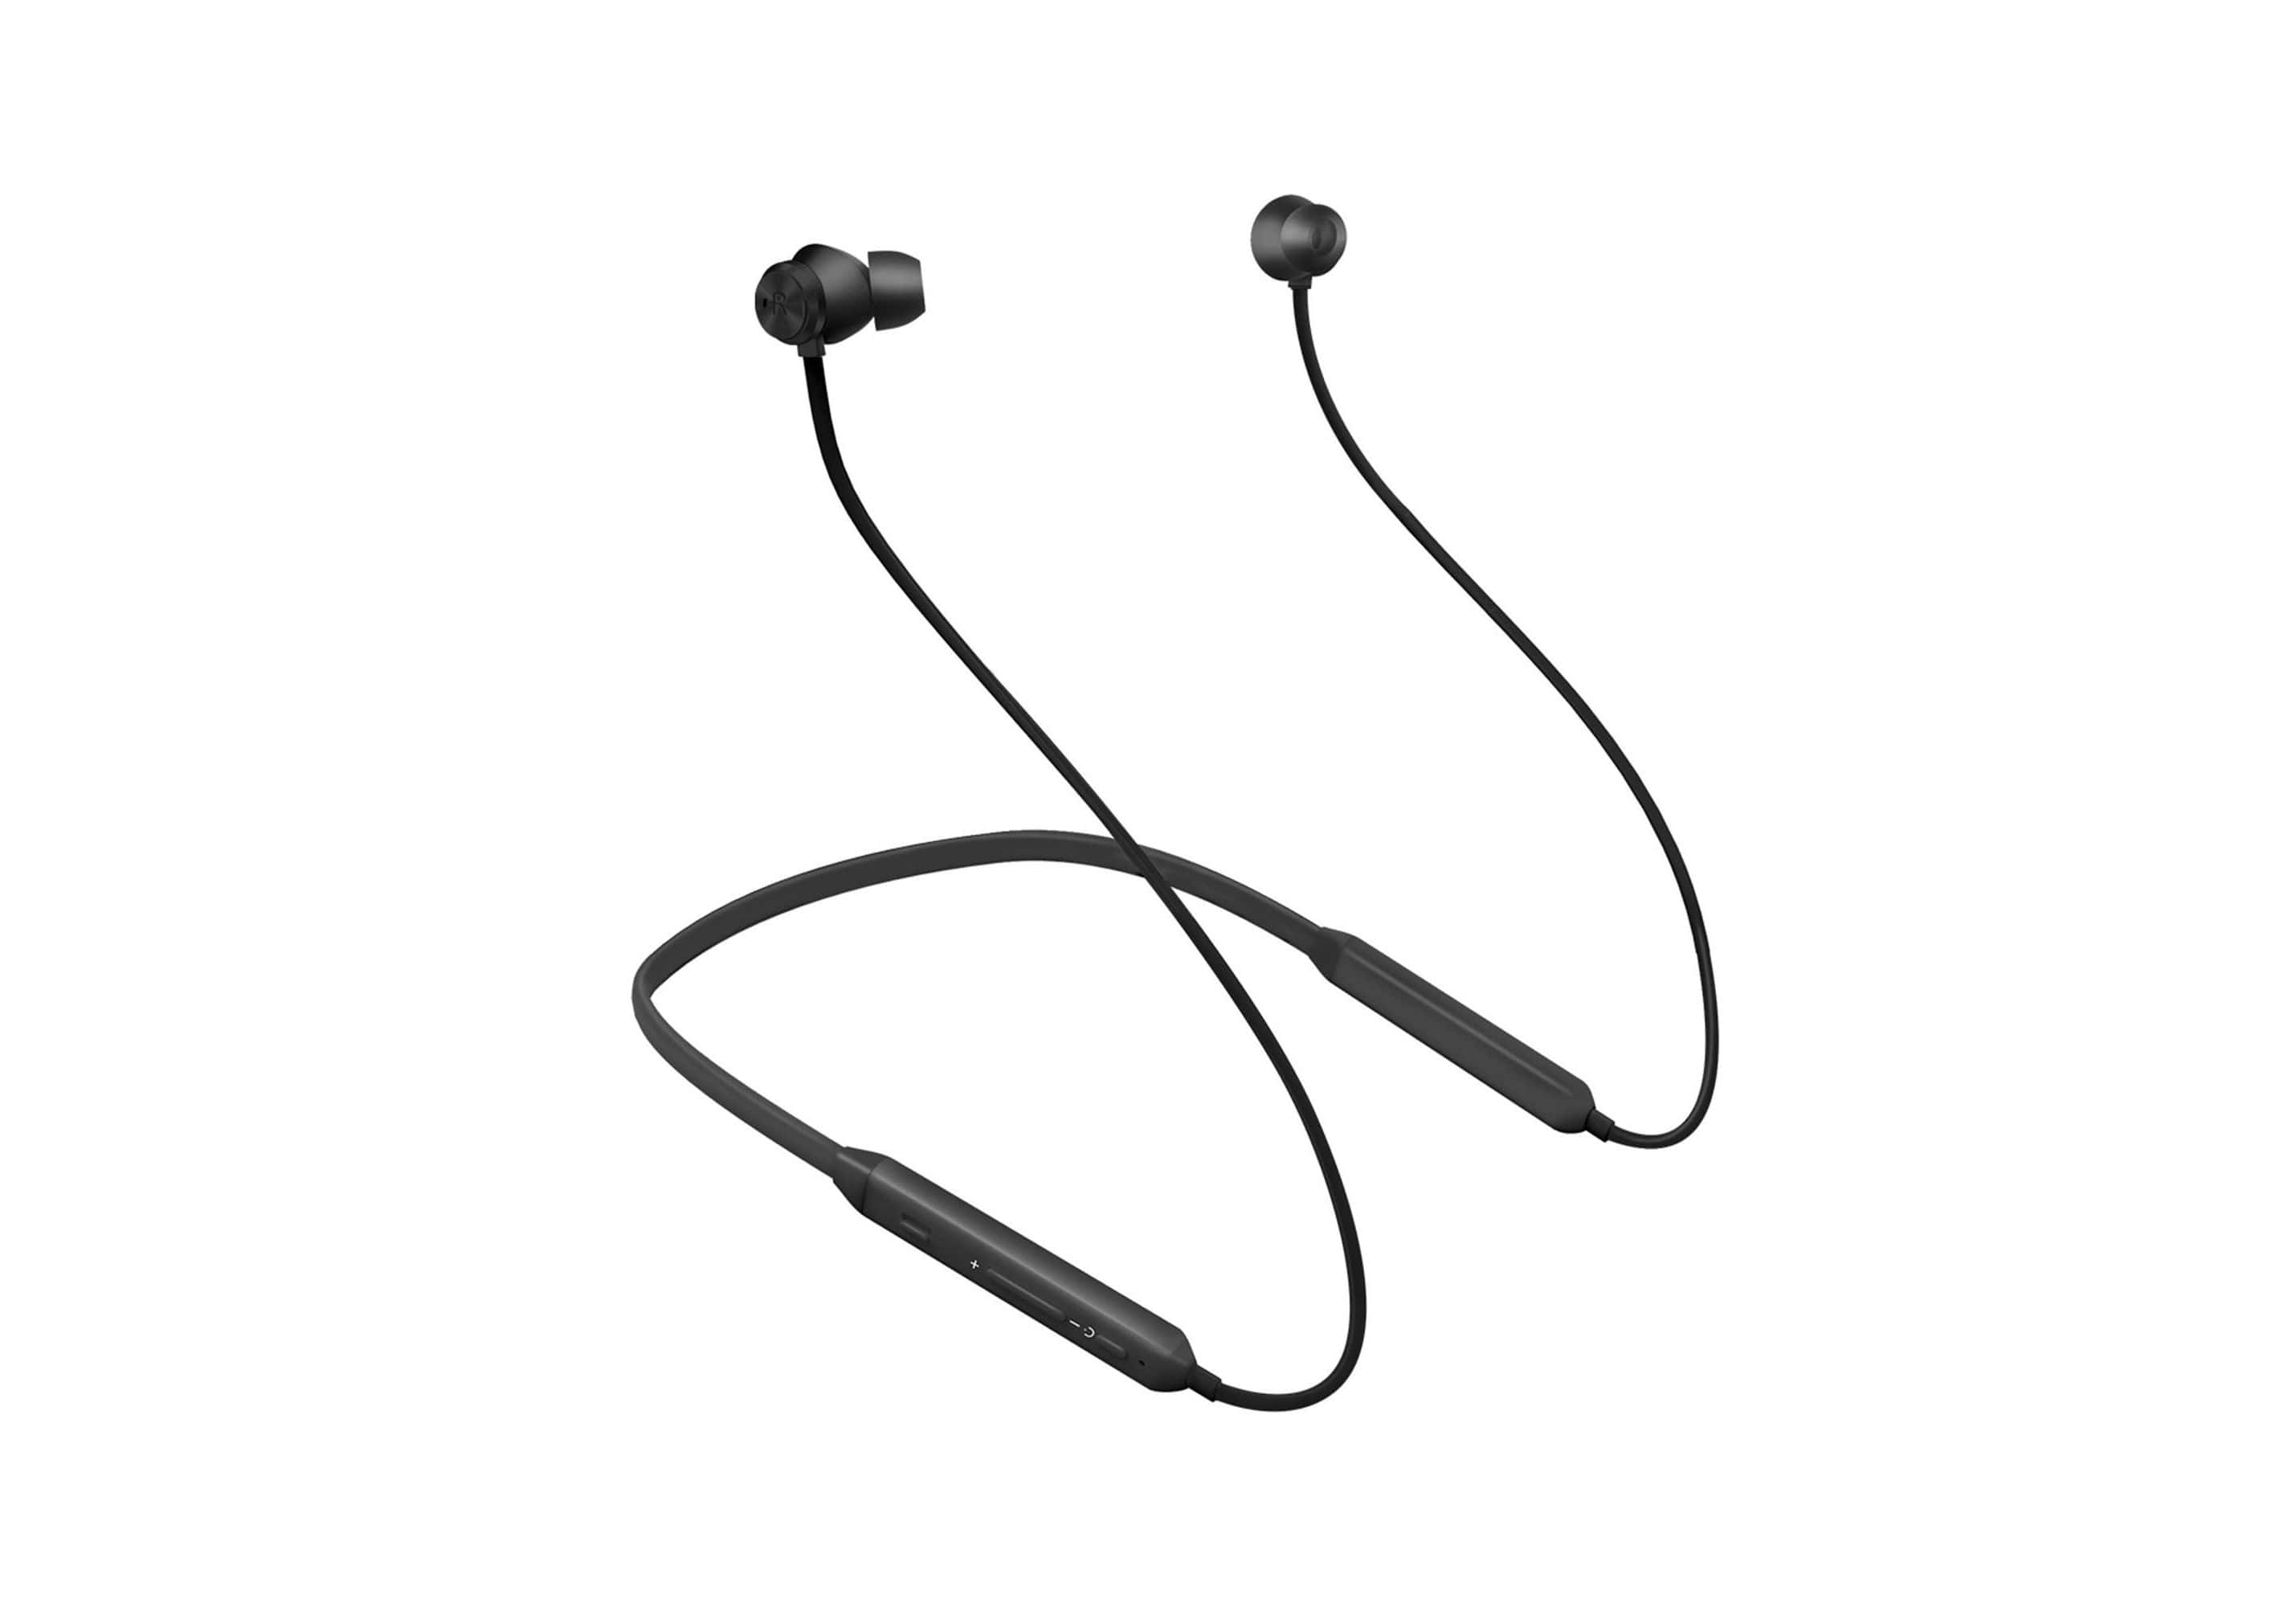 CCK Noise-cancelling Neckband Headphones